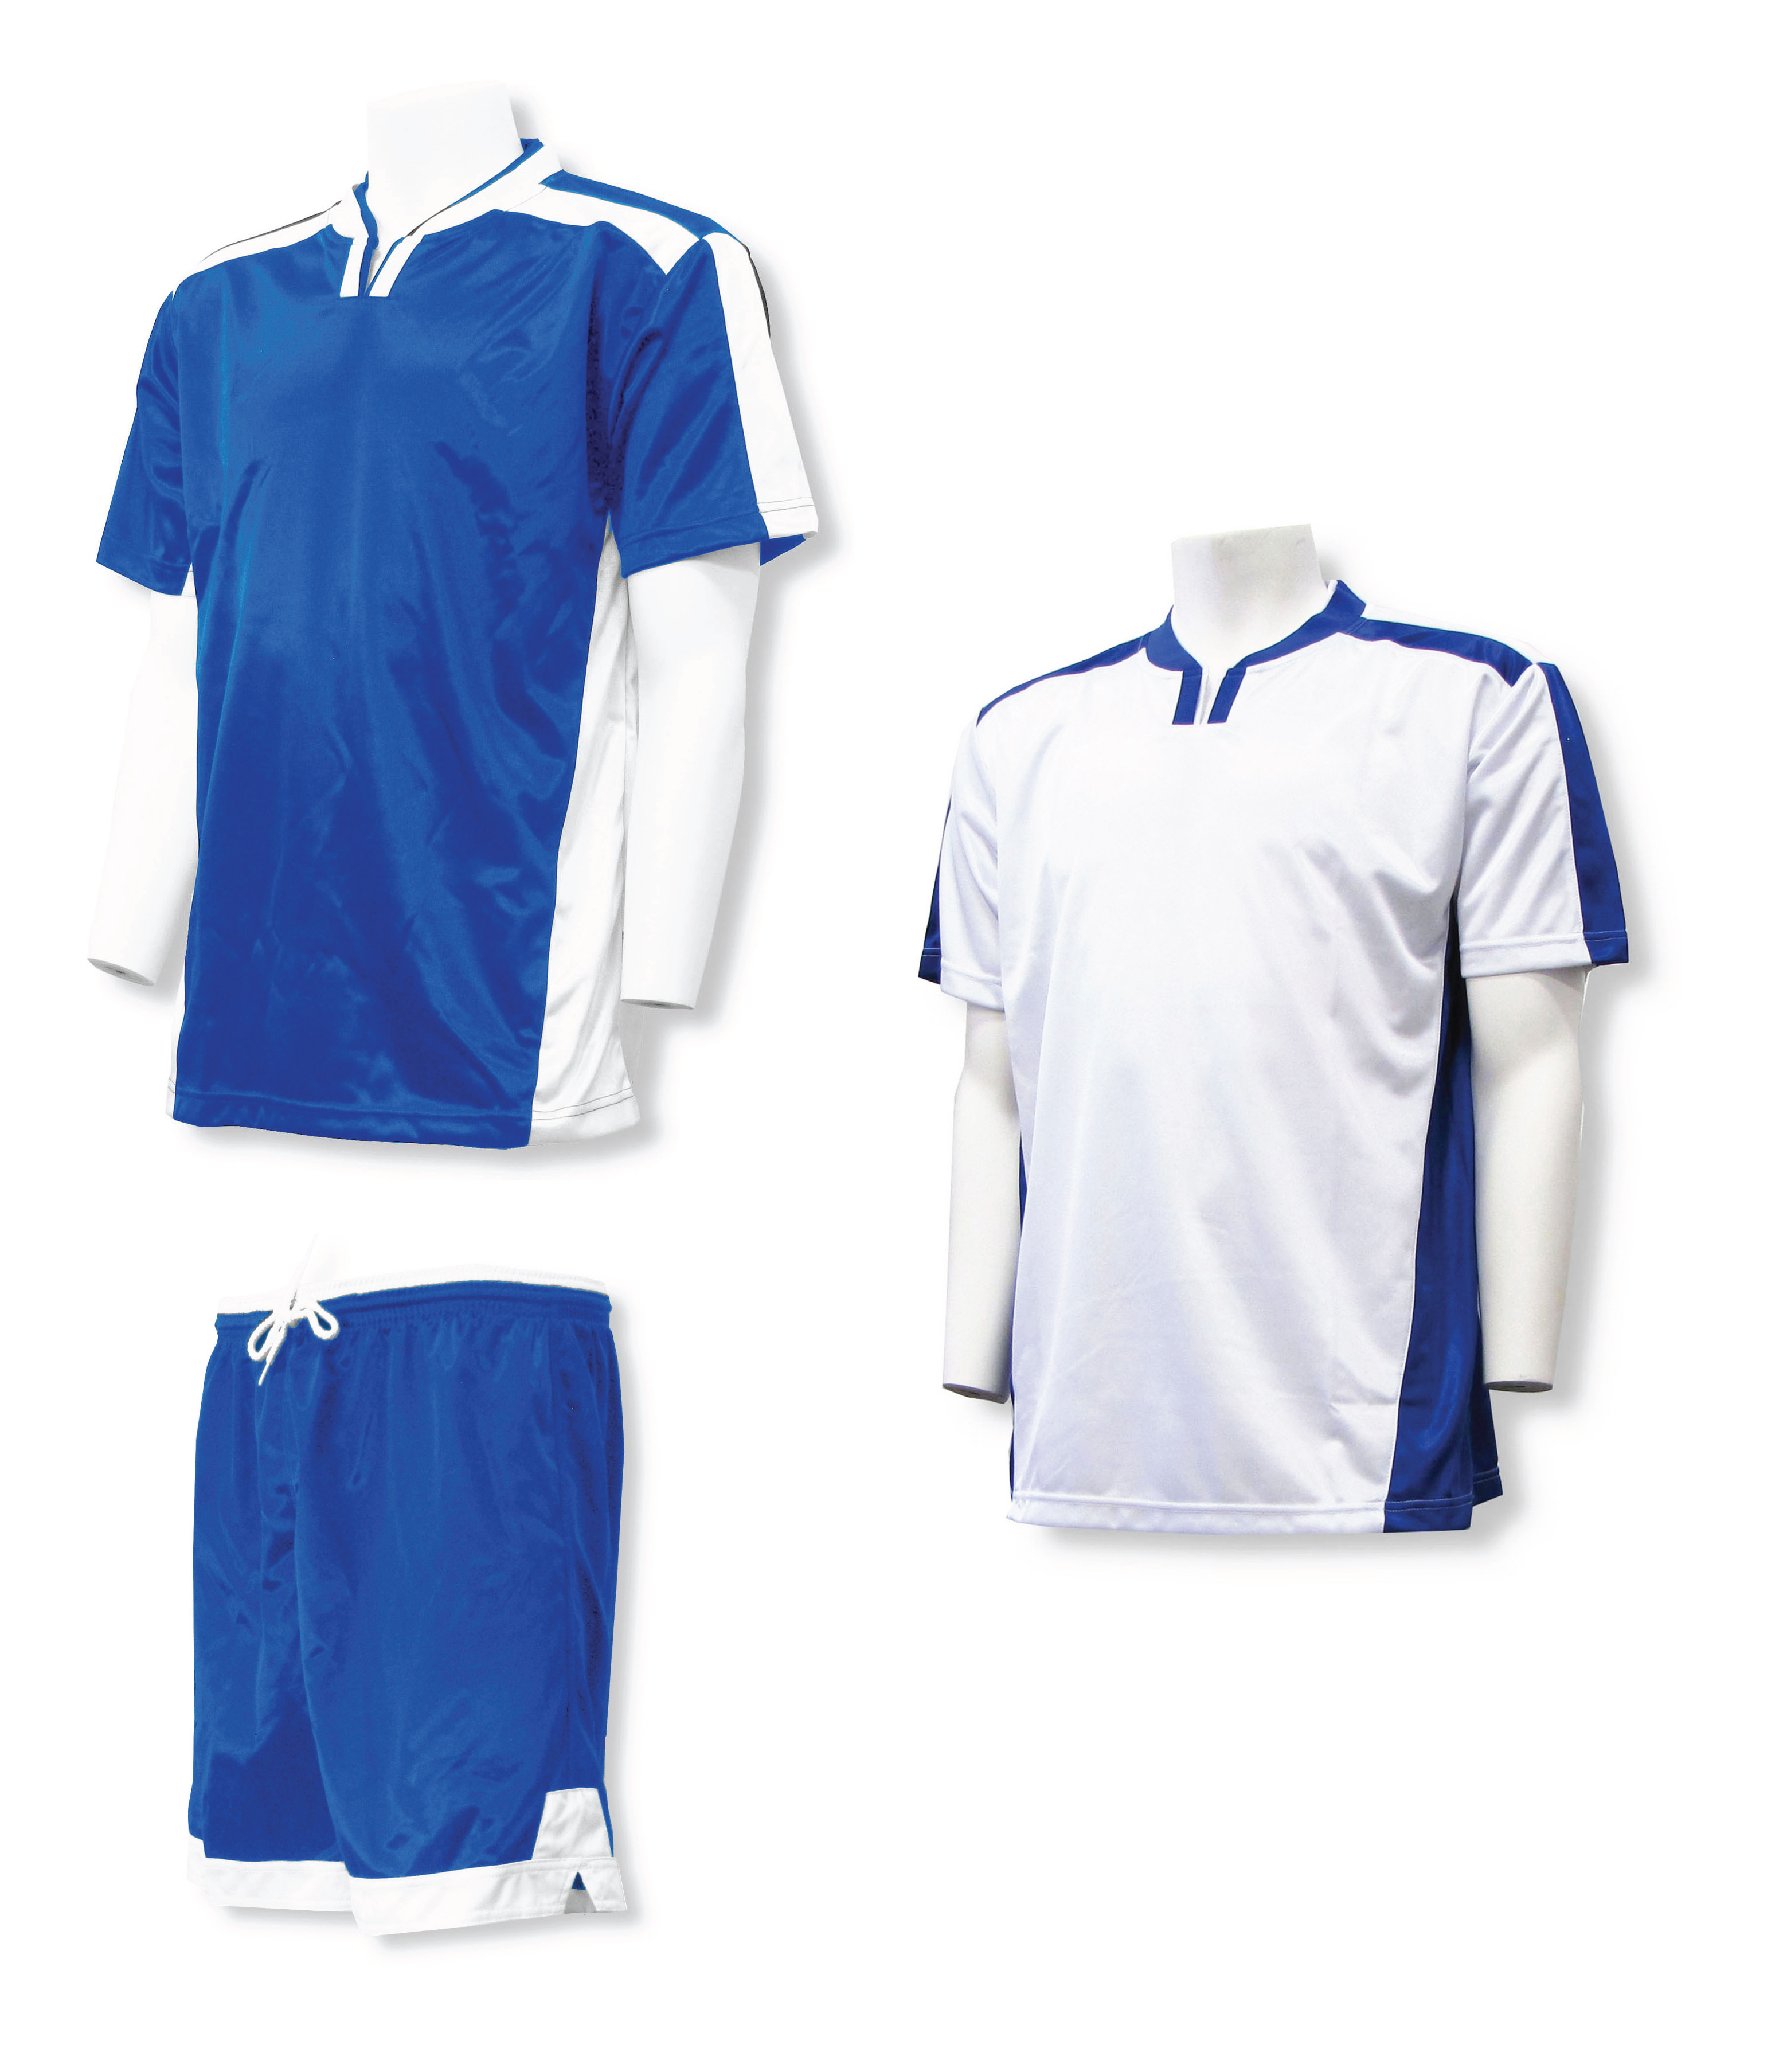 Winchester soccer uniform kit with 2 jerseys, 1 pr shorts in royal/white by Code Four Athletics